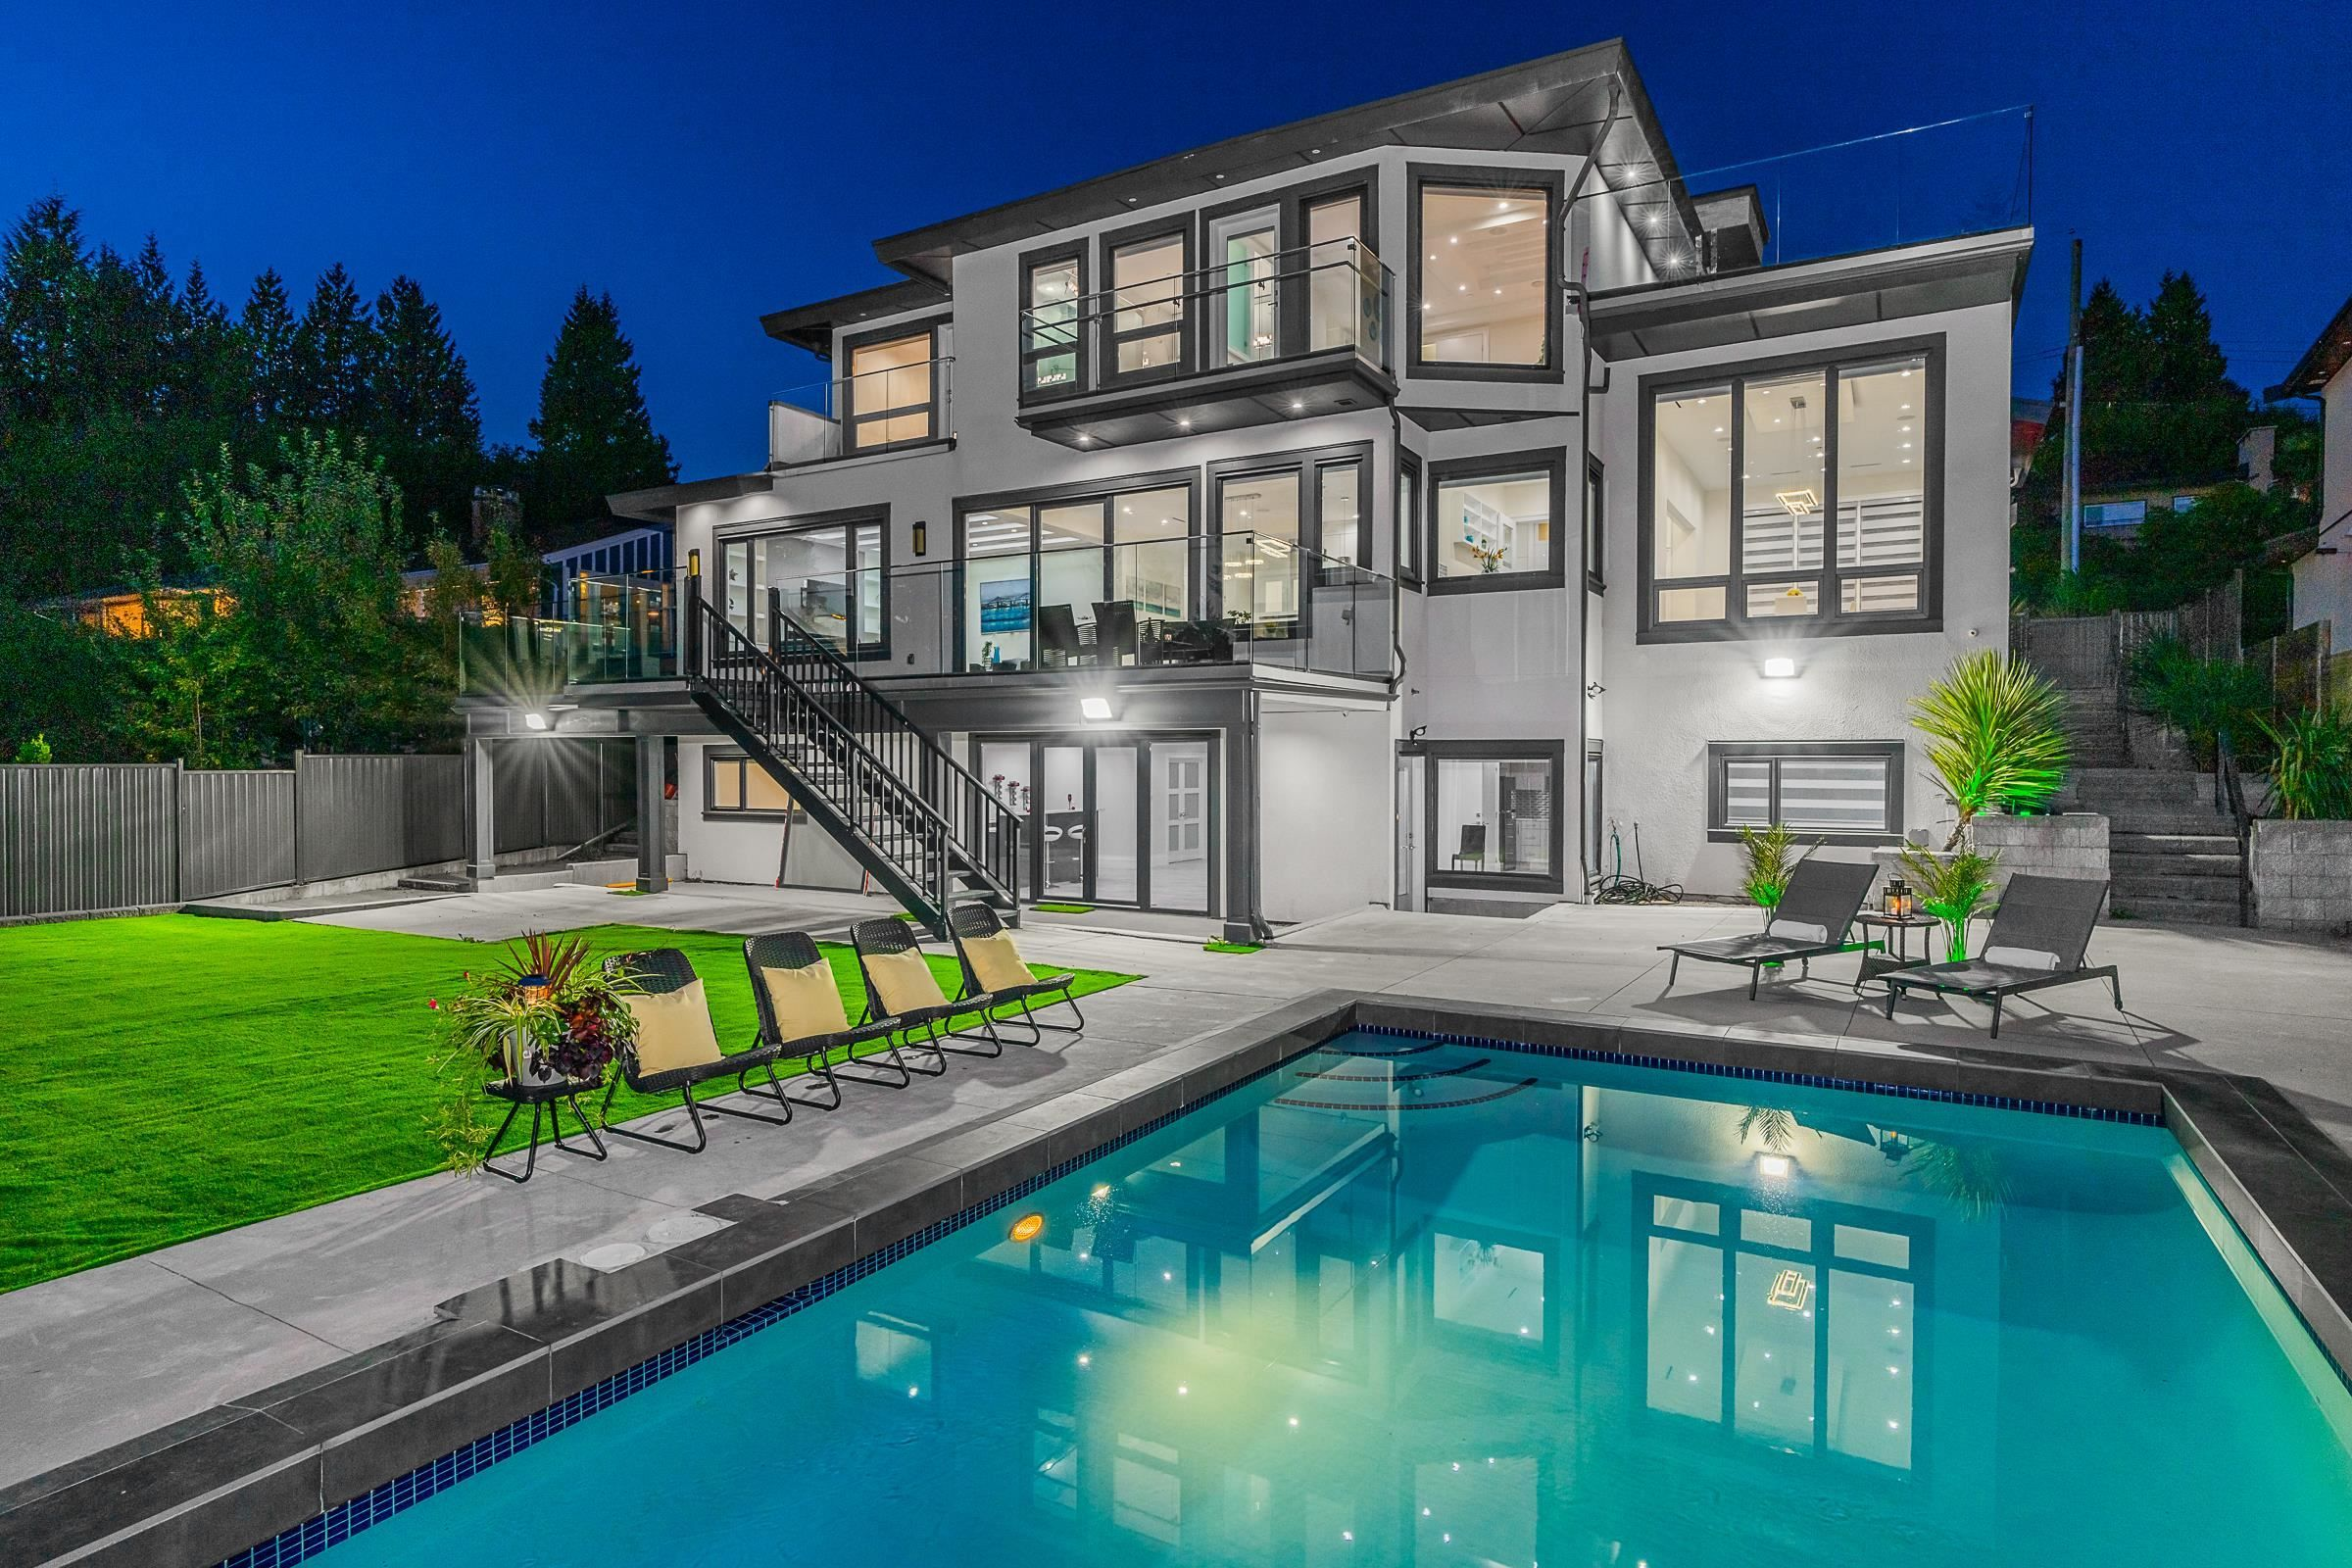 Main Photo: 1266 OTTABURN Road in West Vancouver: British Properties House for sale : MLS®# R2619632